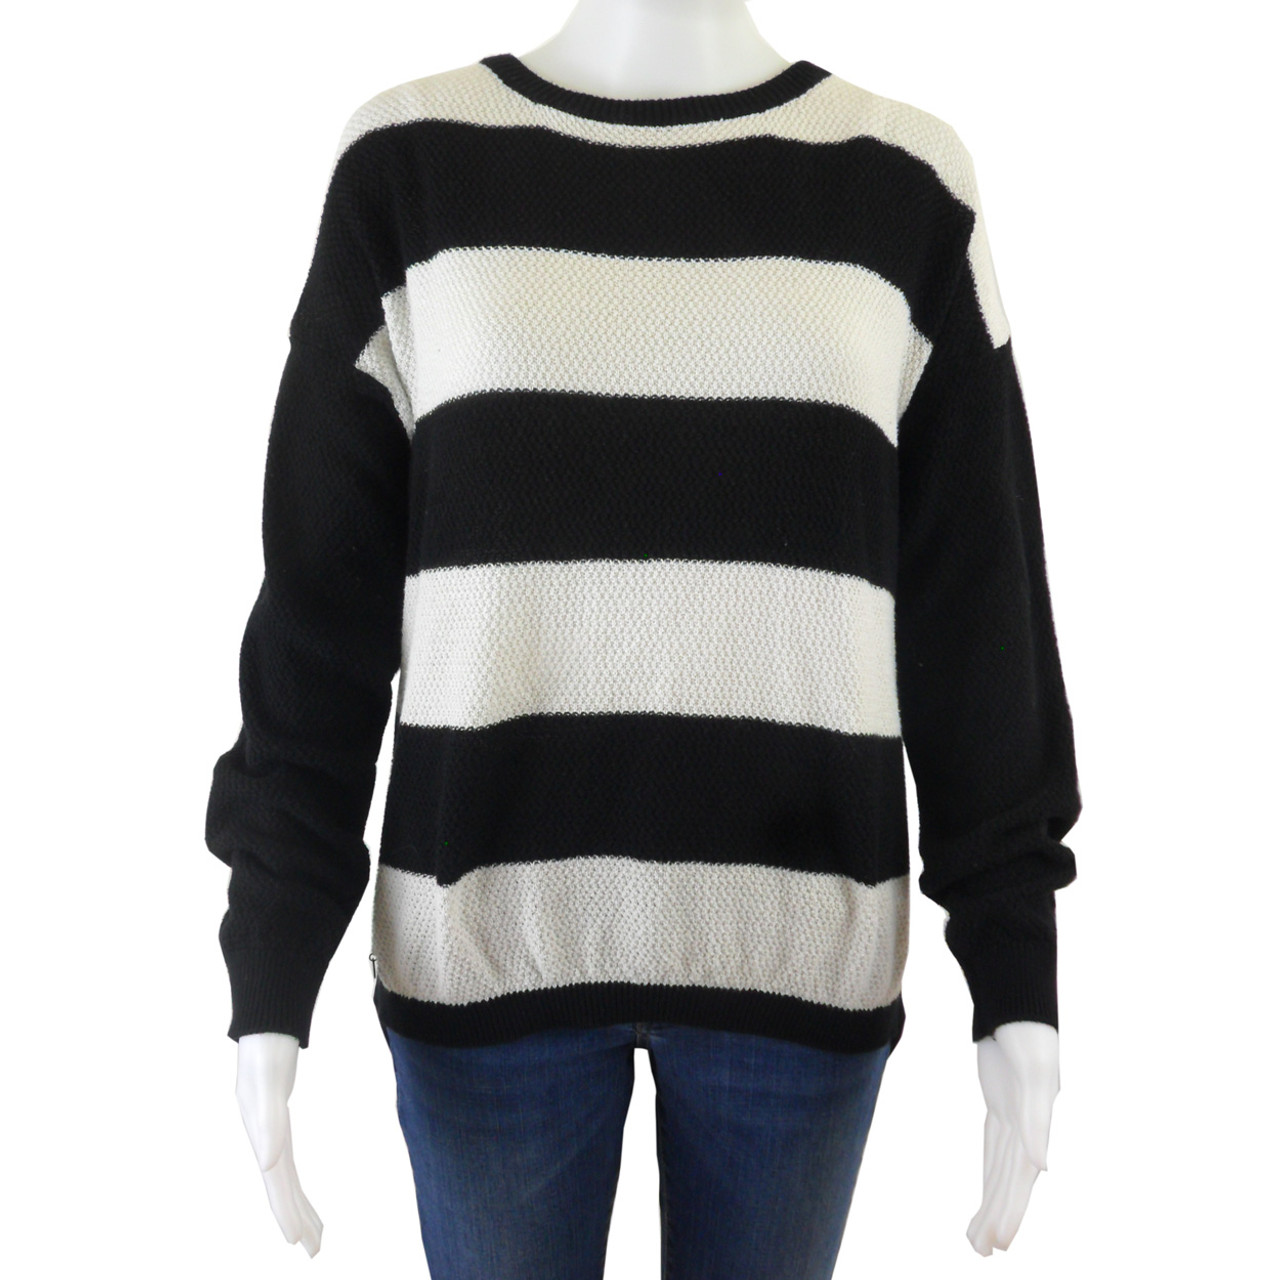 release date f90f6 fe8b8 Blue Pullover Striped Sweater with Sheer Back Size L - NWOT